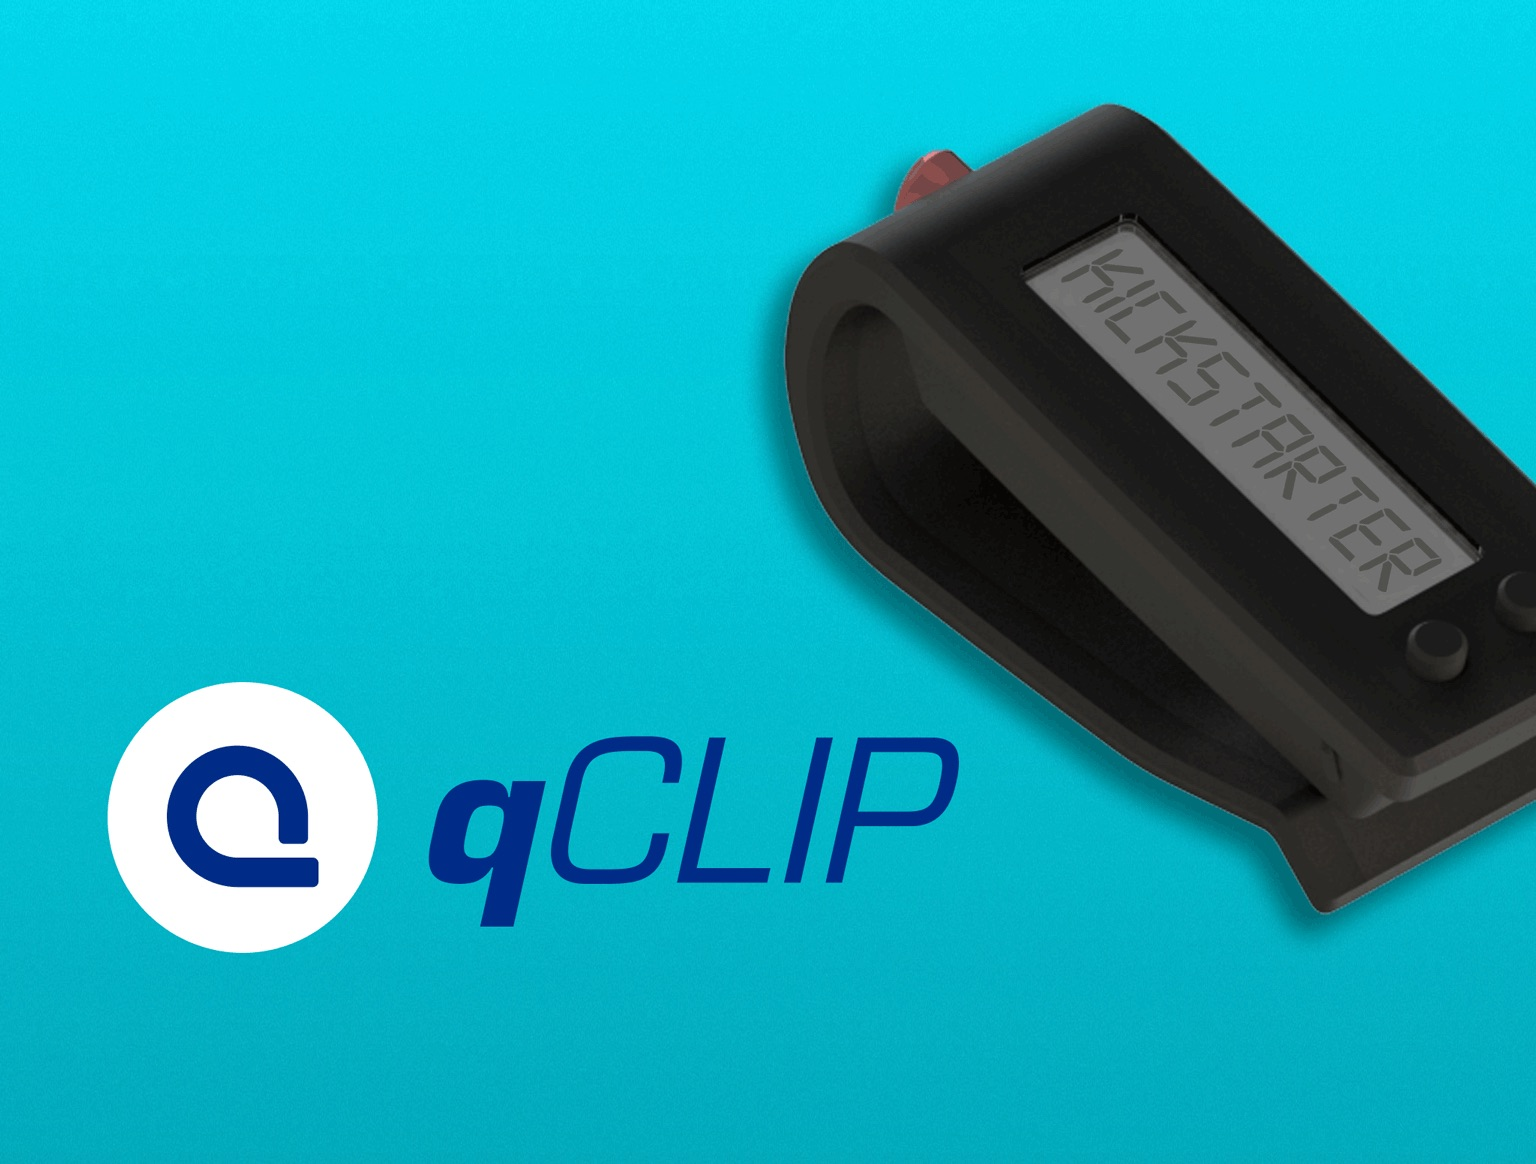 qClip Device Launches Fundraising Campaign on Kickstarter